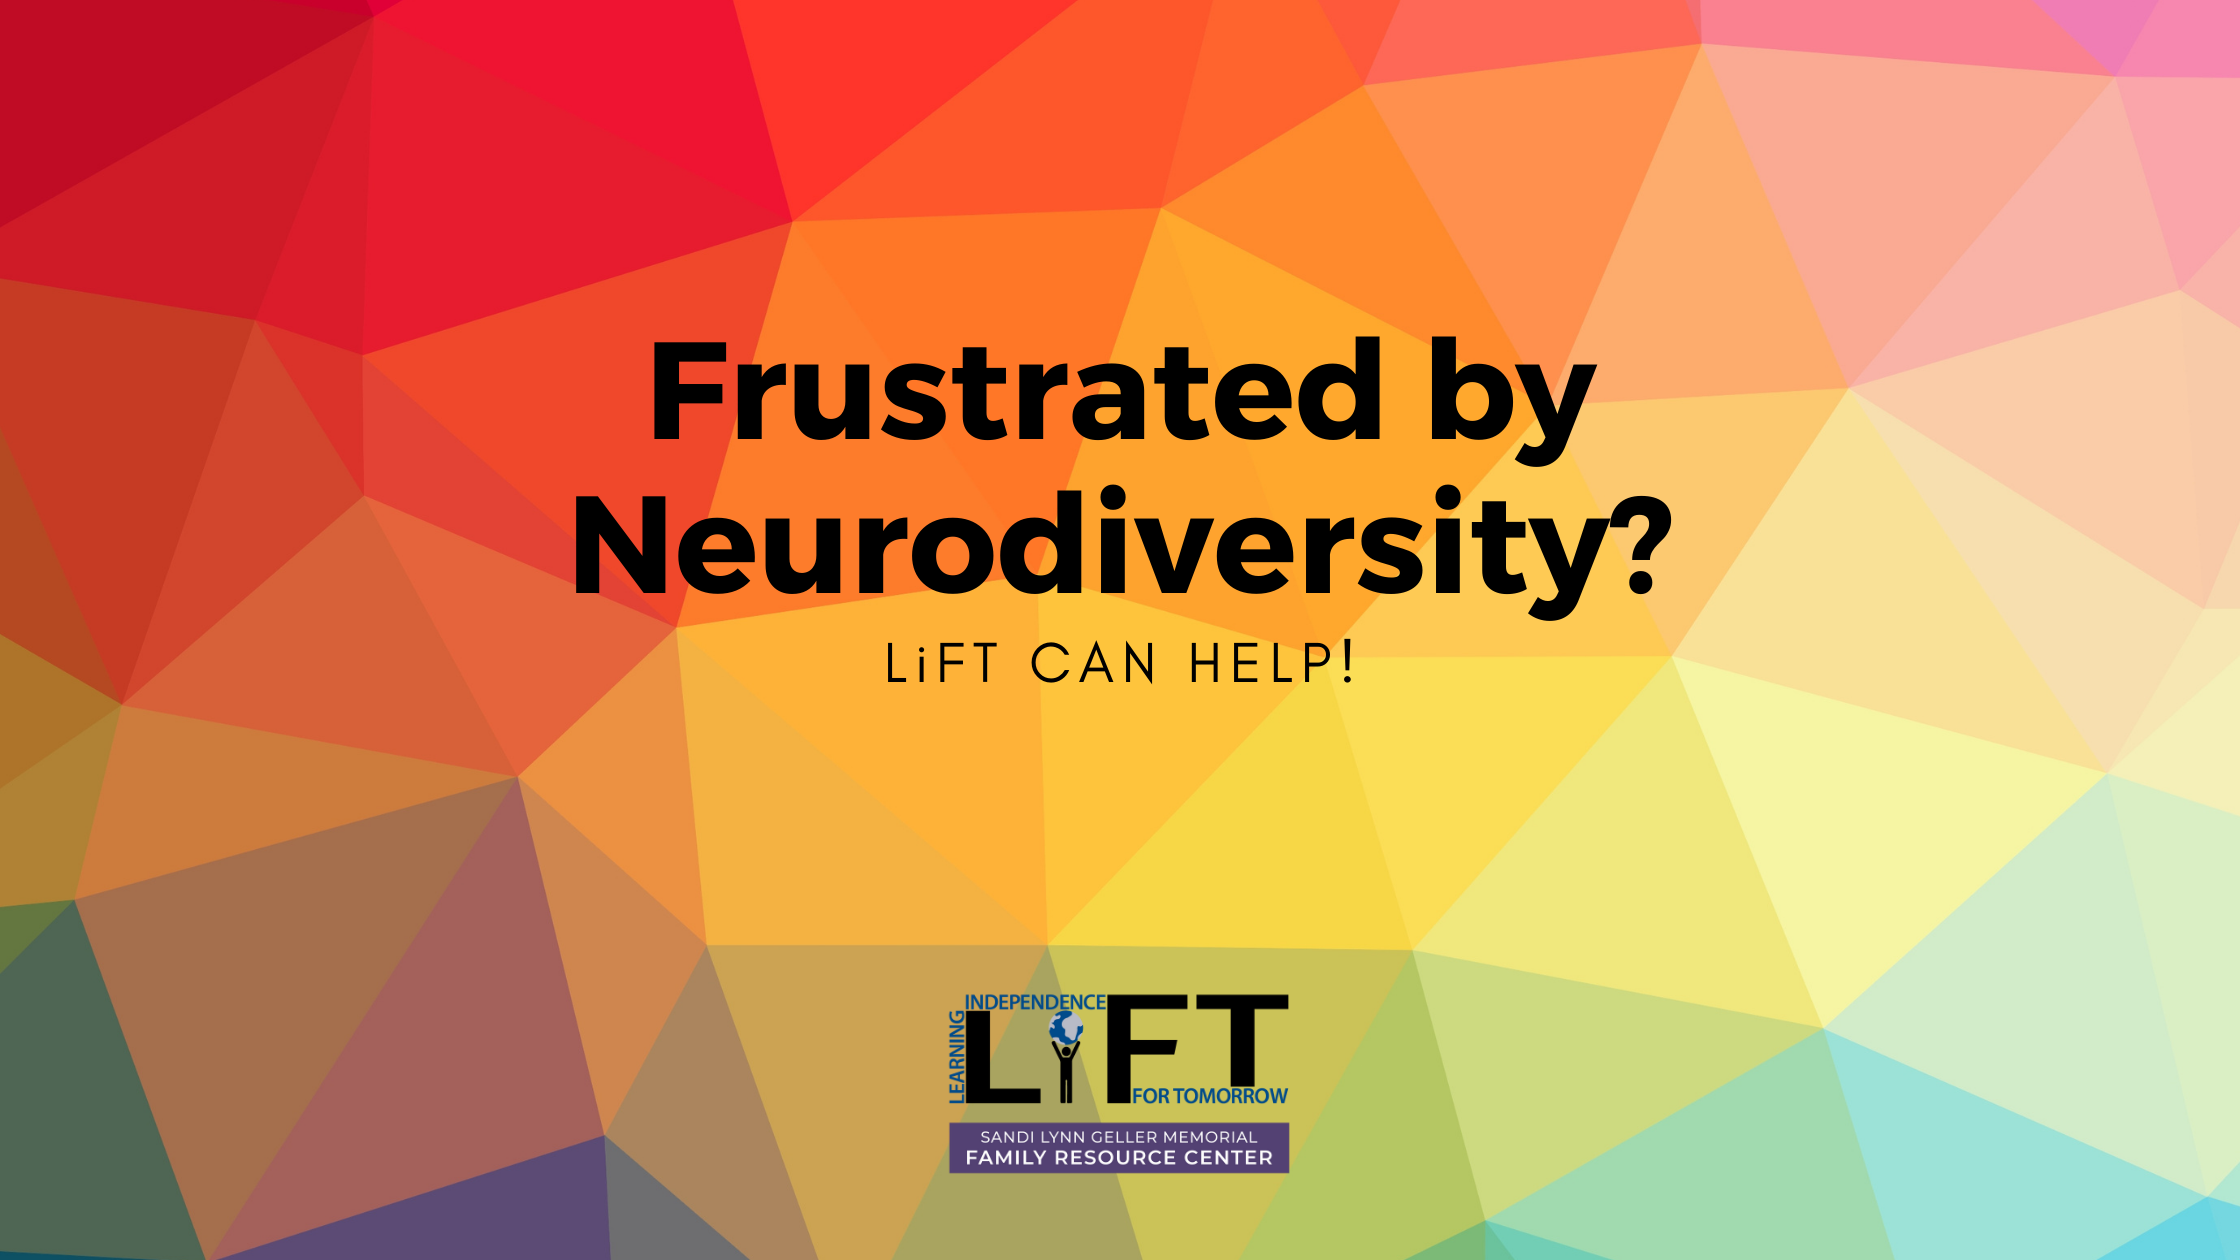 Frustrated by Neurodiversity? LiFT Can Help!